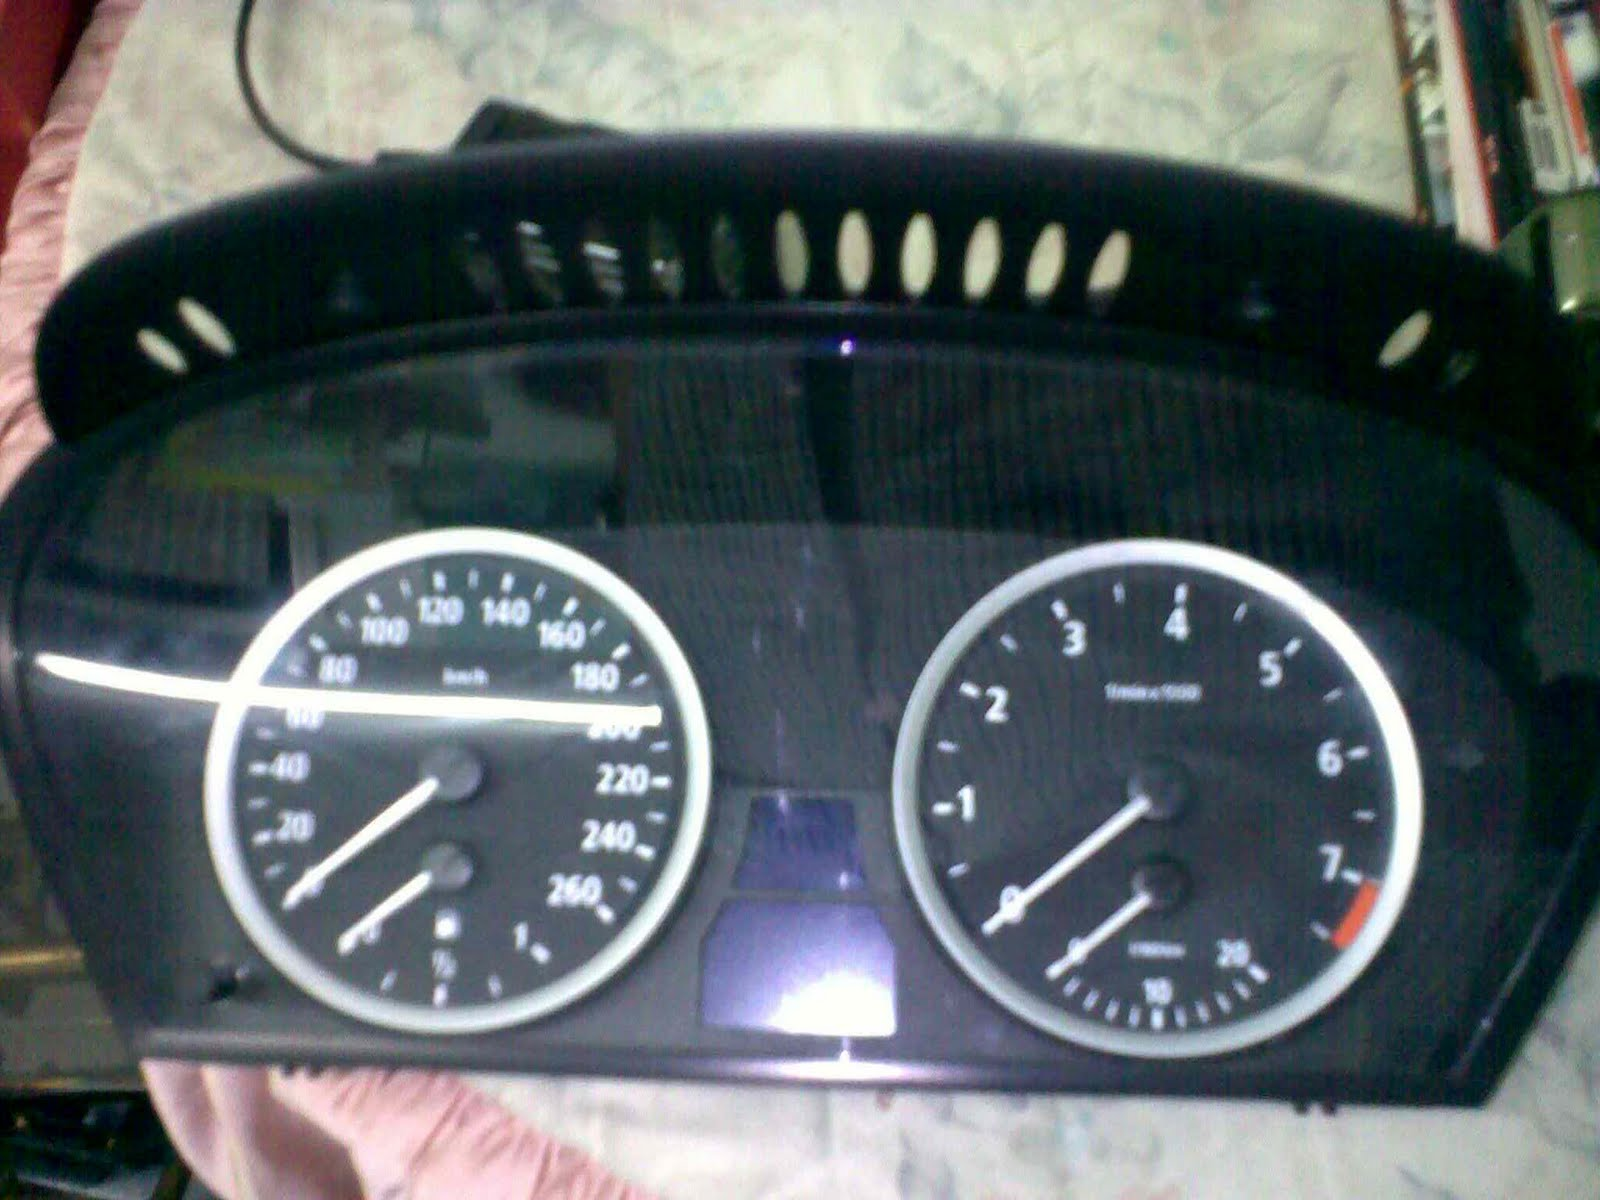 CHAN USED PARTS FOR BMW U0026 MERCEDES BENZ